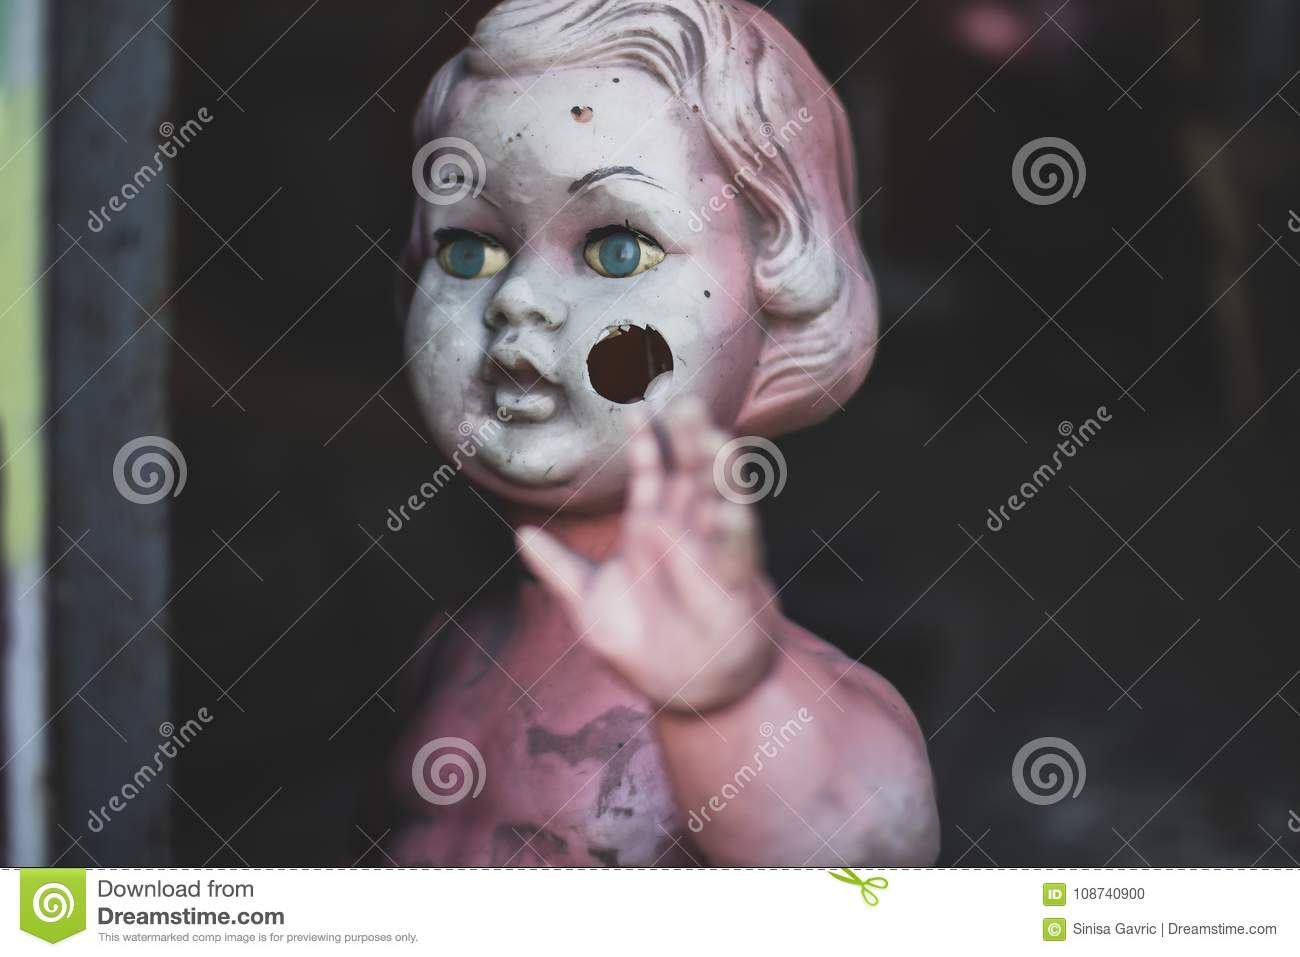 Dirty plastic naked baby doll standing by the door at the metal shop looking eerie and hunted weaving closeup